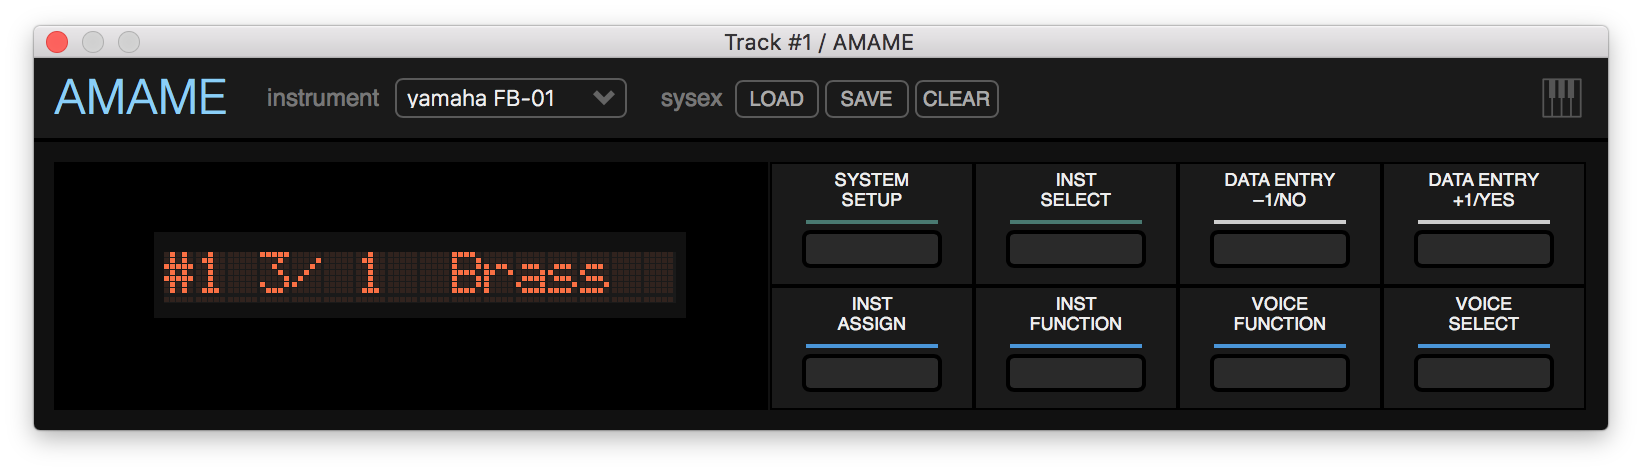 MAME synths as VST plugins · Issue #3817 · mamedev/mame · GitHub